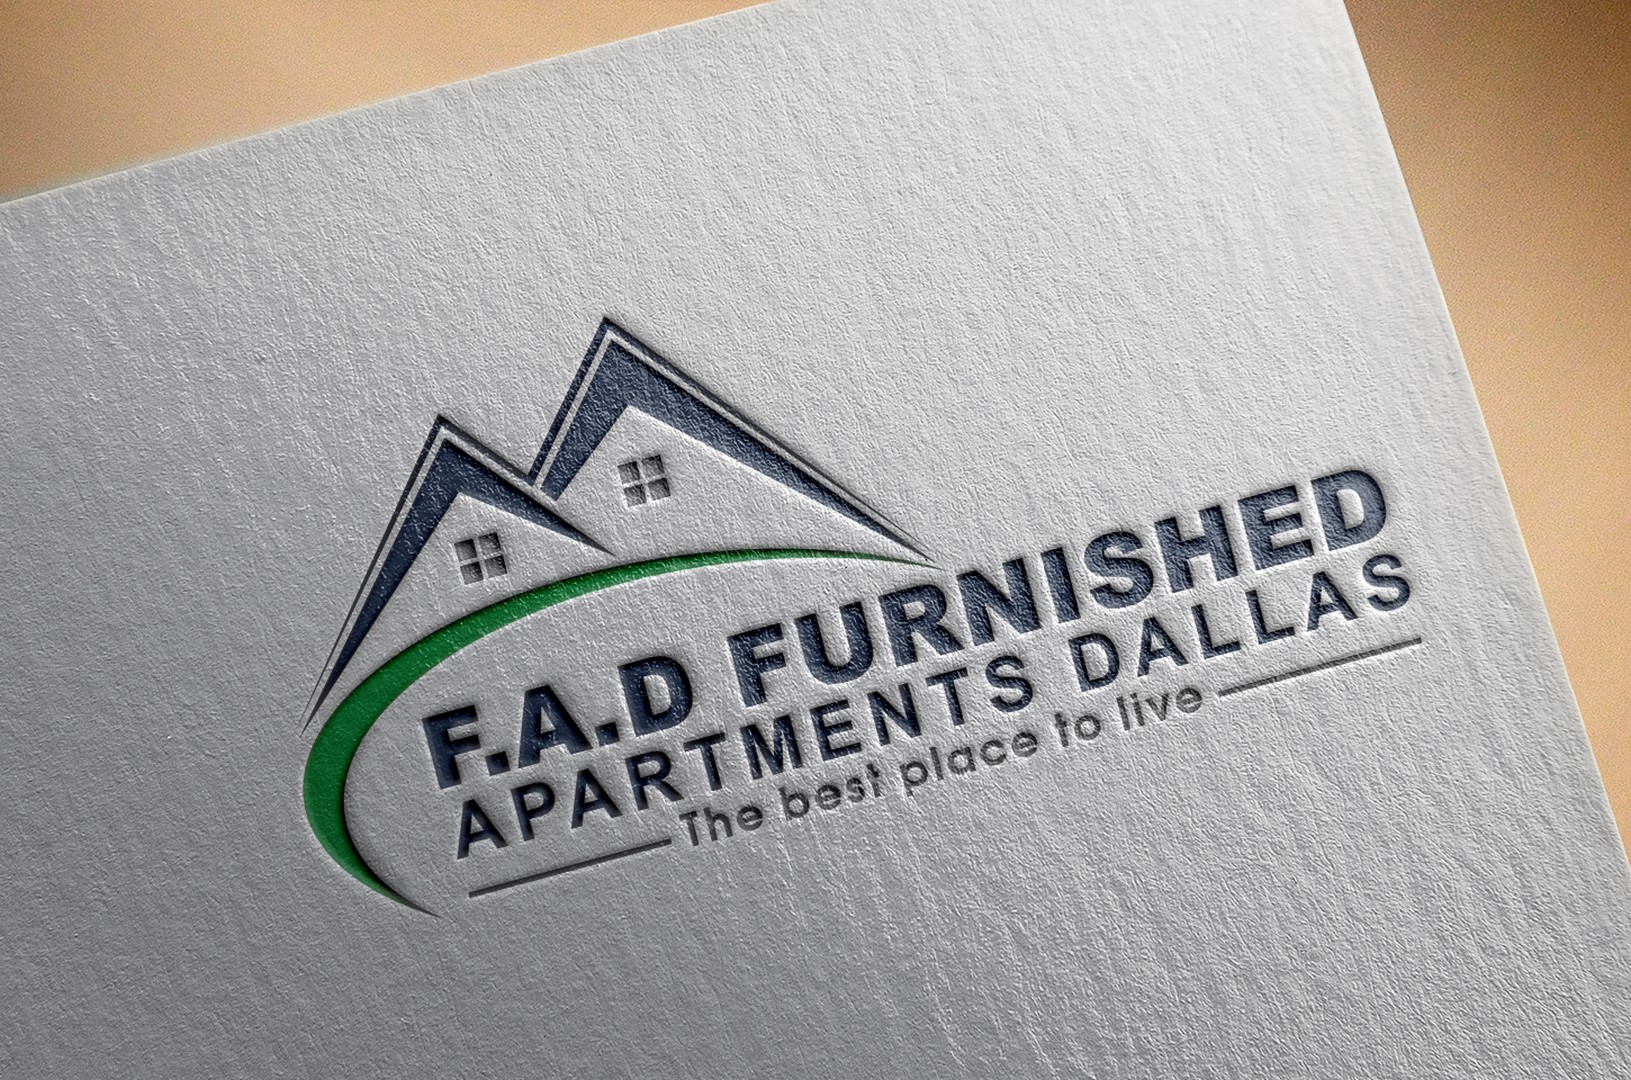 furnished apartments in dallas tx apartment rentals best price